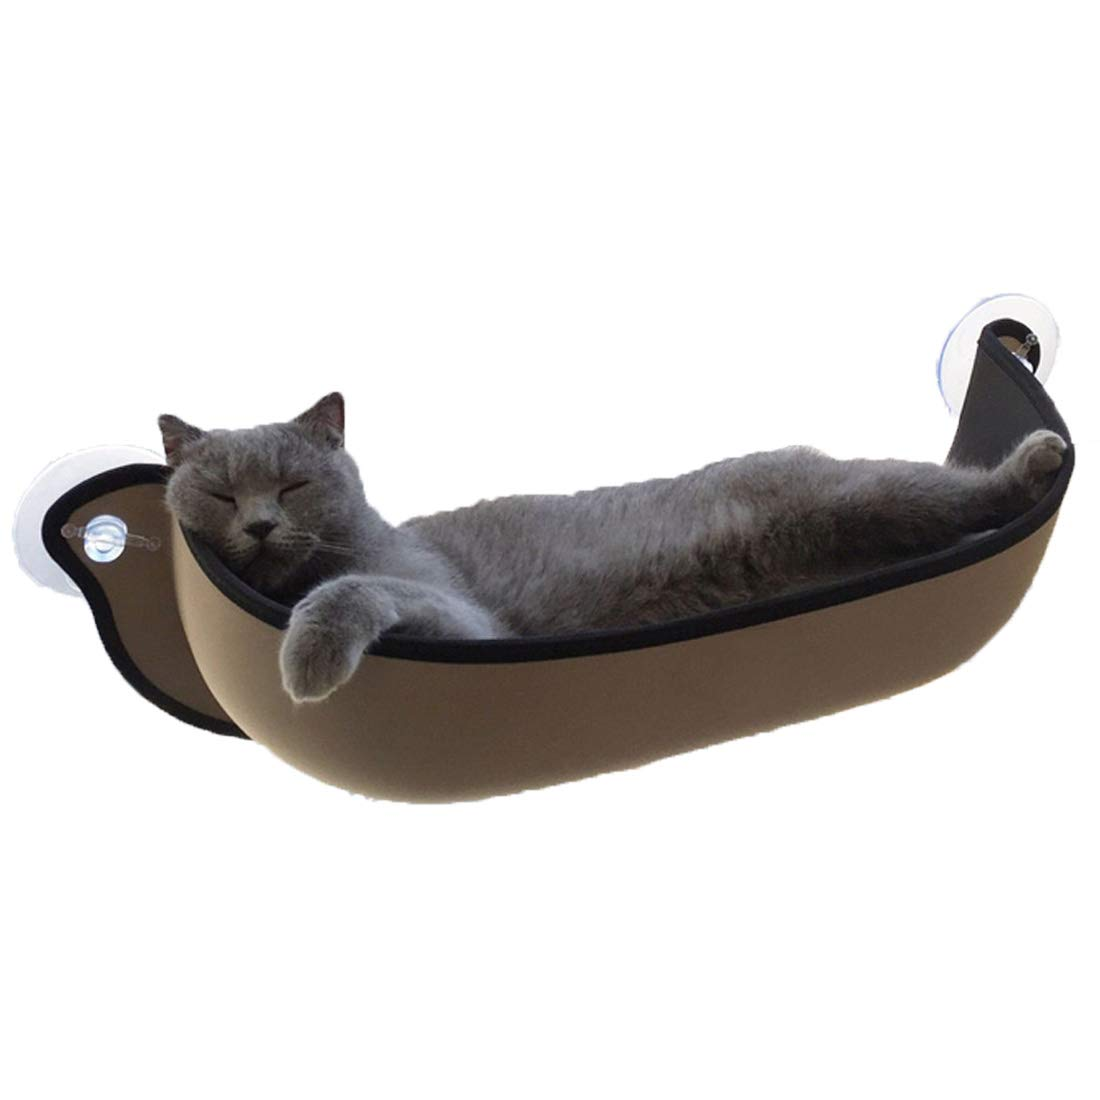 A Cat Window Perch Cat Window Bed Cat Hammock Window Pet Sunny Seat Window-Mounted Cat Bed High-End Decoration Hanging Nest Pets Cat Climbing Frame Sunbathing + Daydreaming 68×28CM Can Bear 20KG